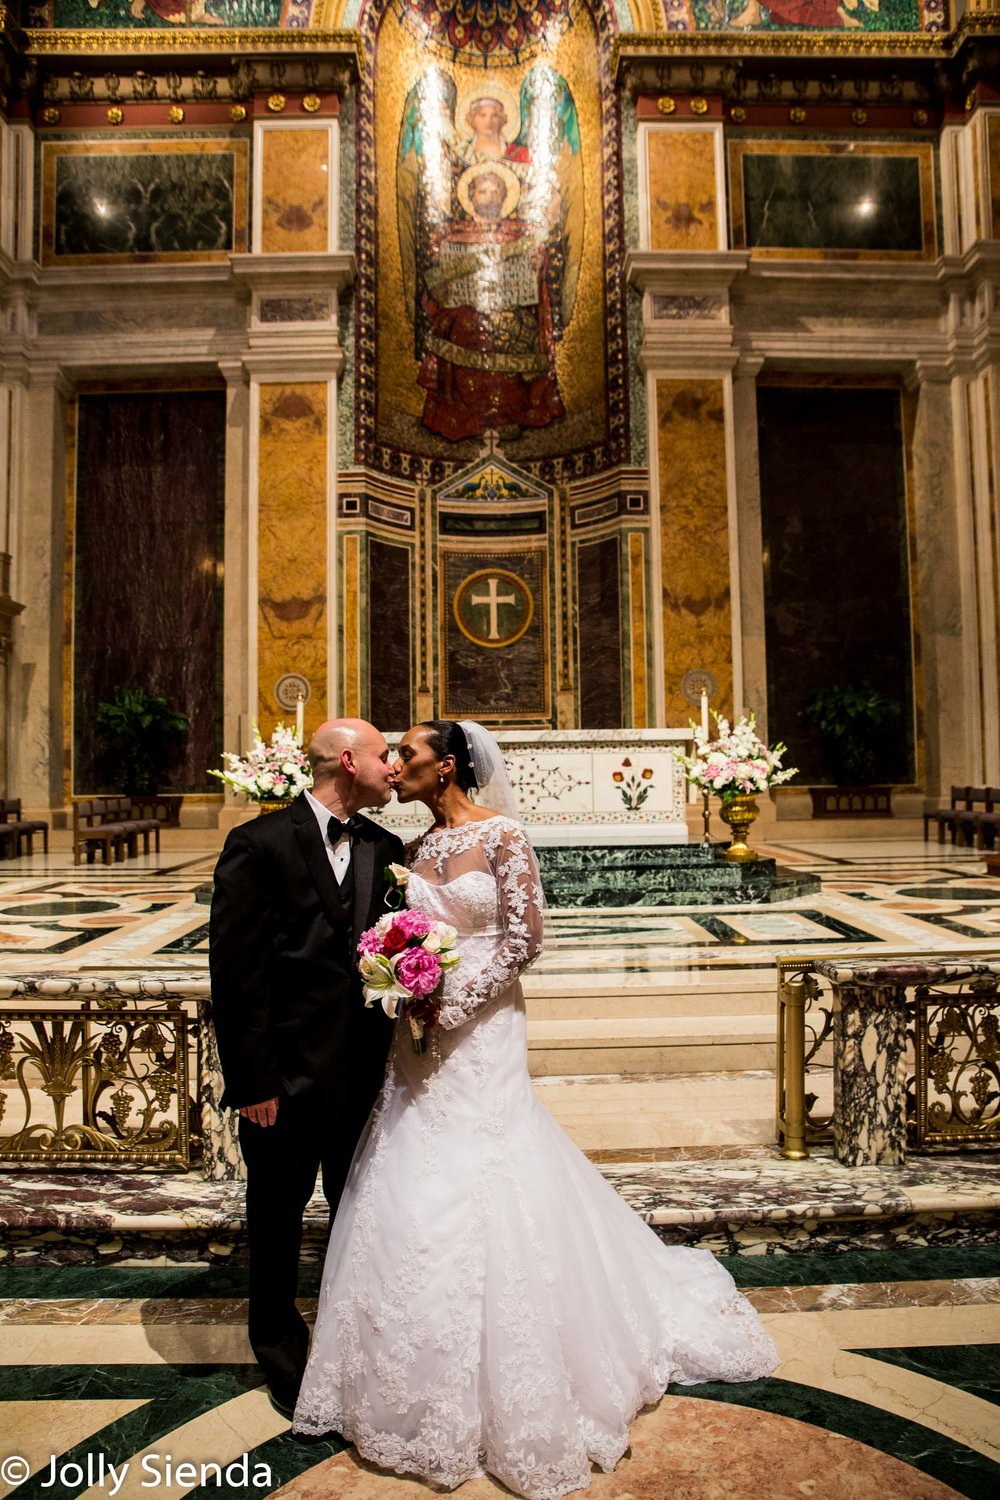 Portrait of a Bride and groom kiss at the wedding alter